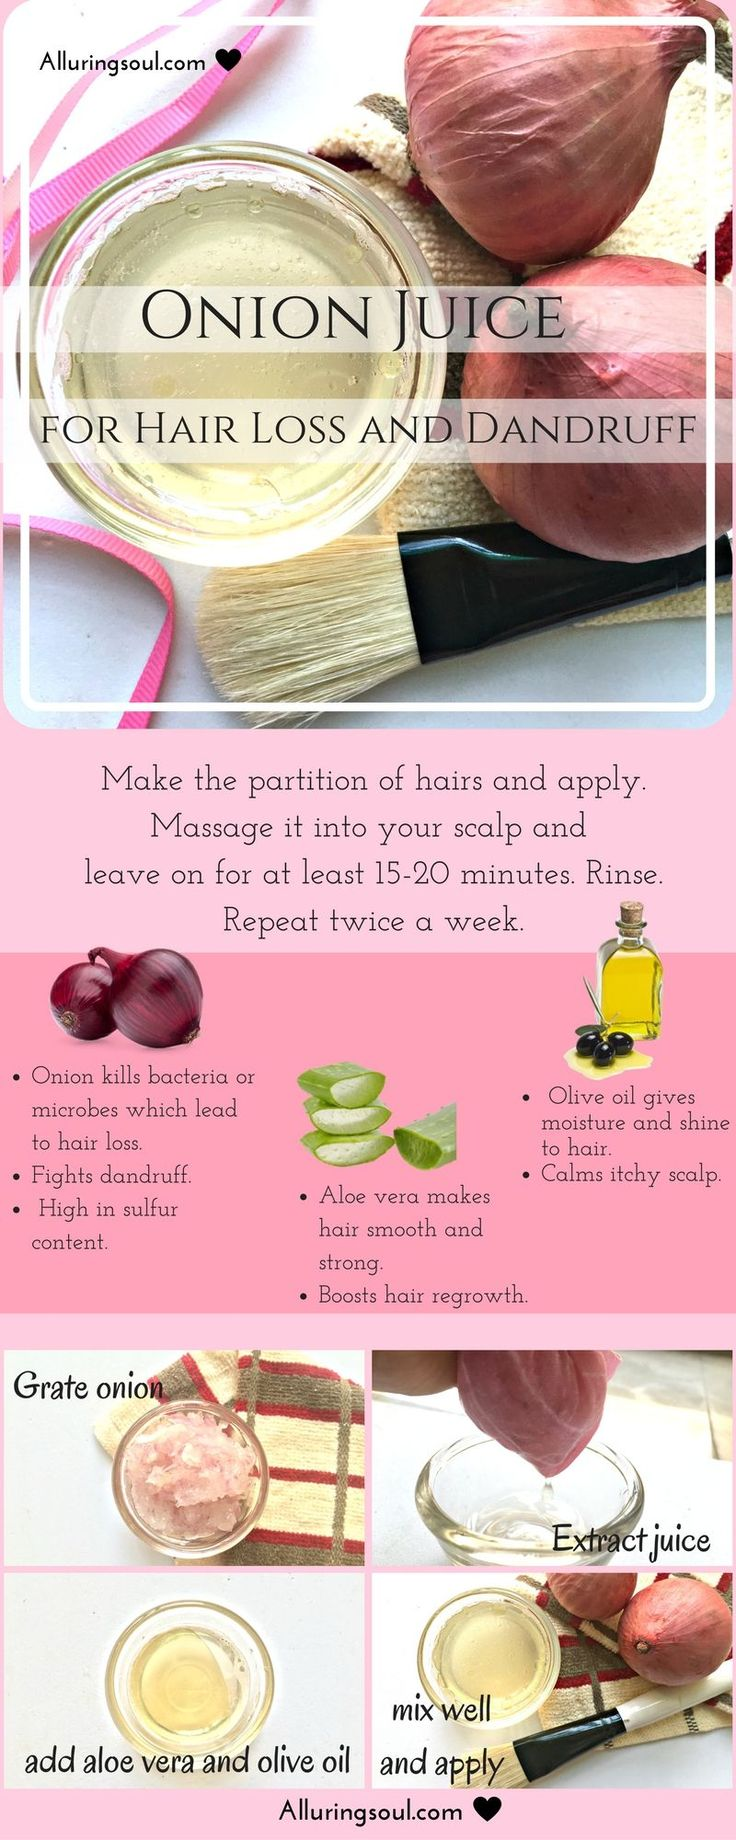 Onion juice for hair loss is the proved remedy for hair and scalp problem. It contains sulfur which makes hair strong which ultimately prevents hair loss.